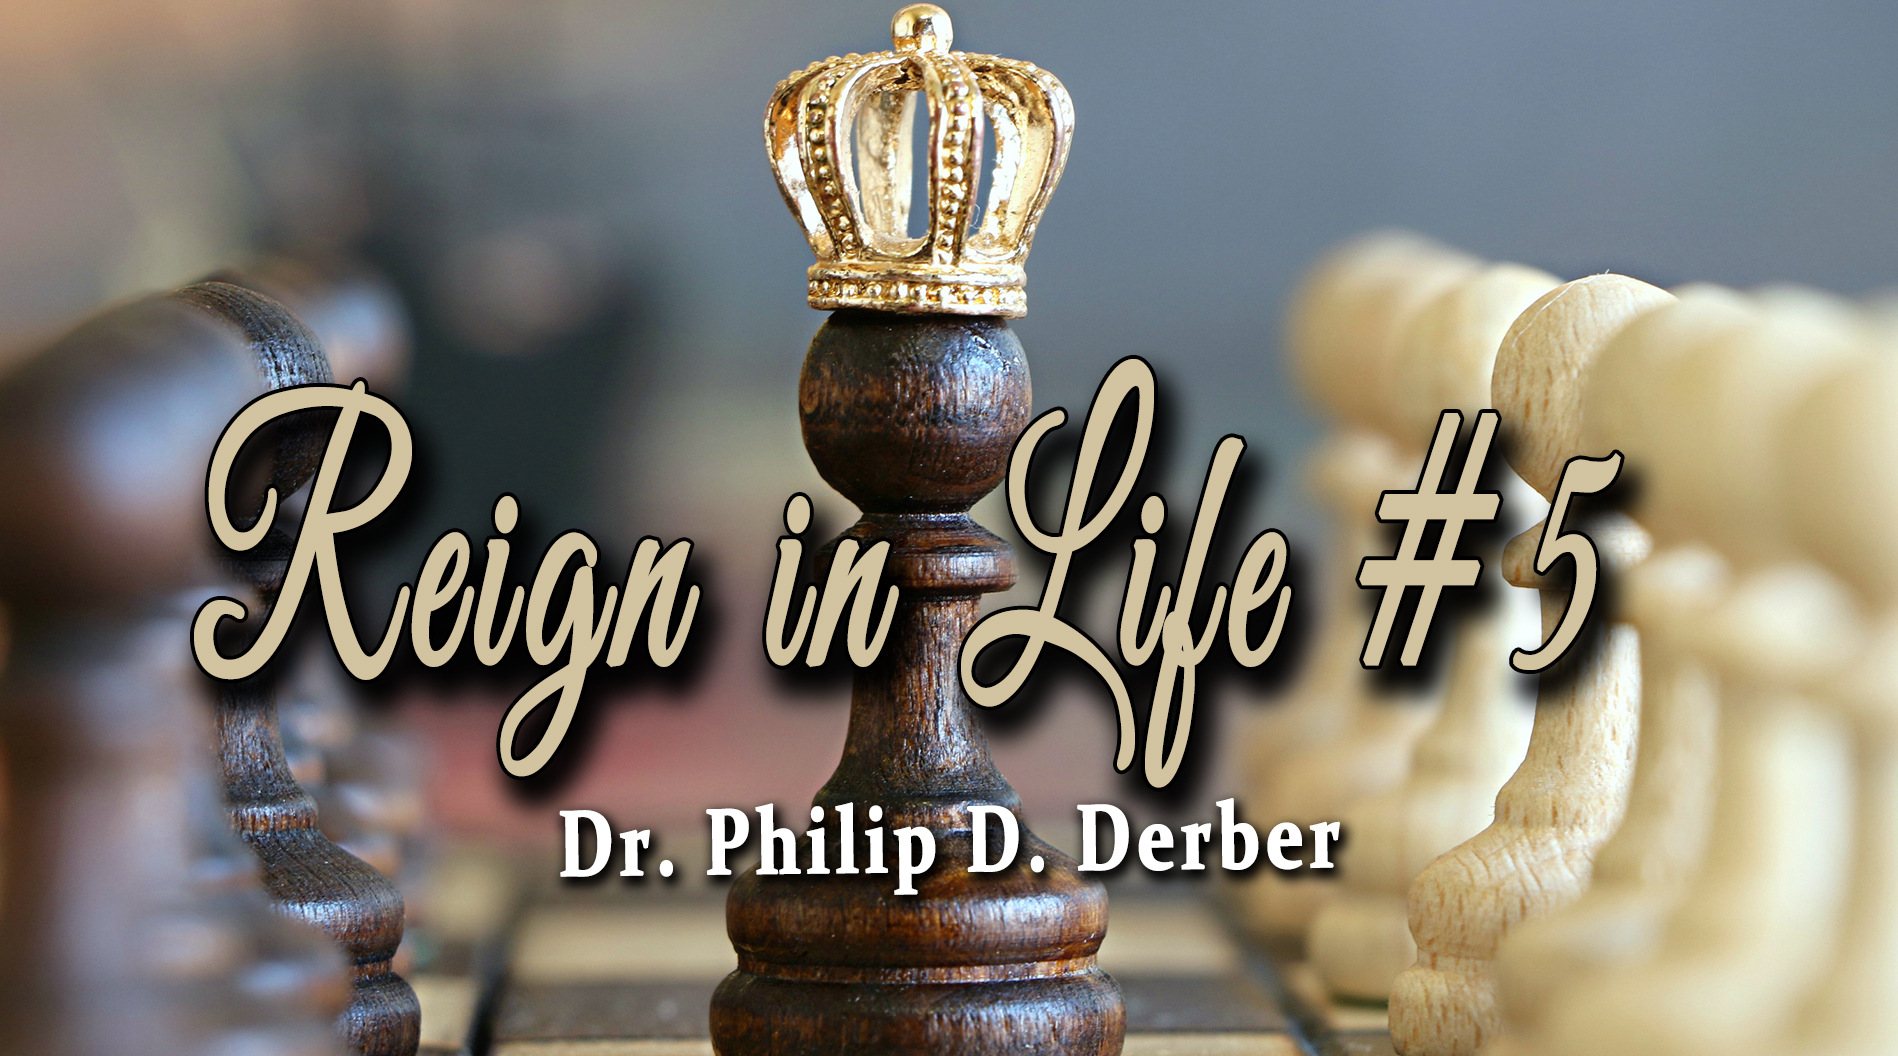 Reign in Life 5